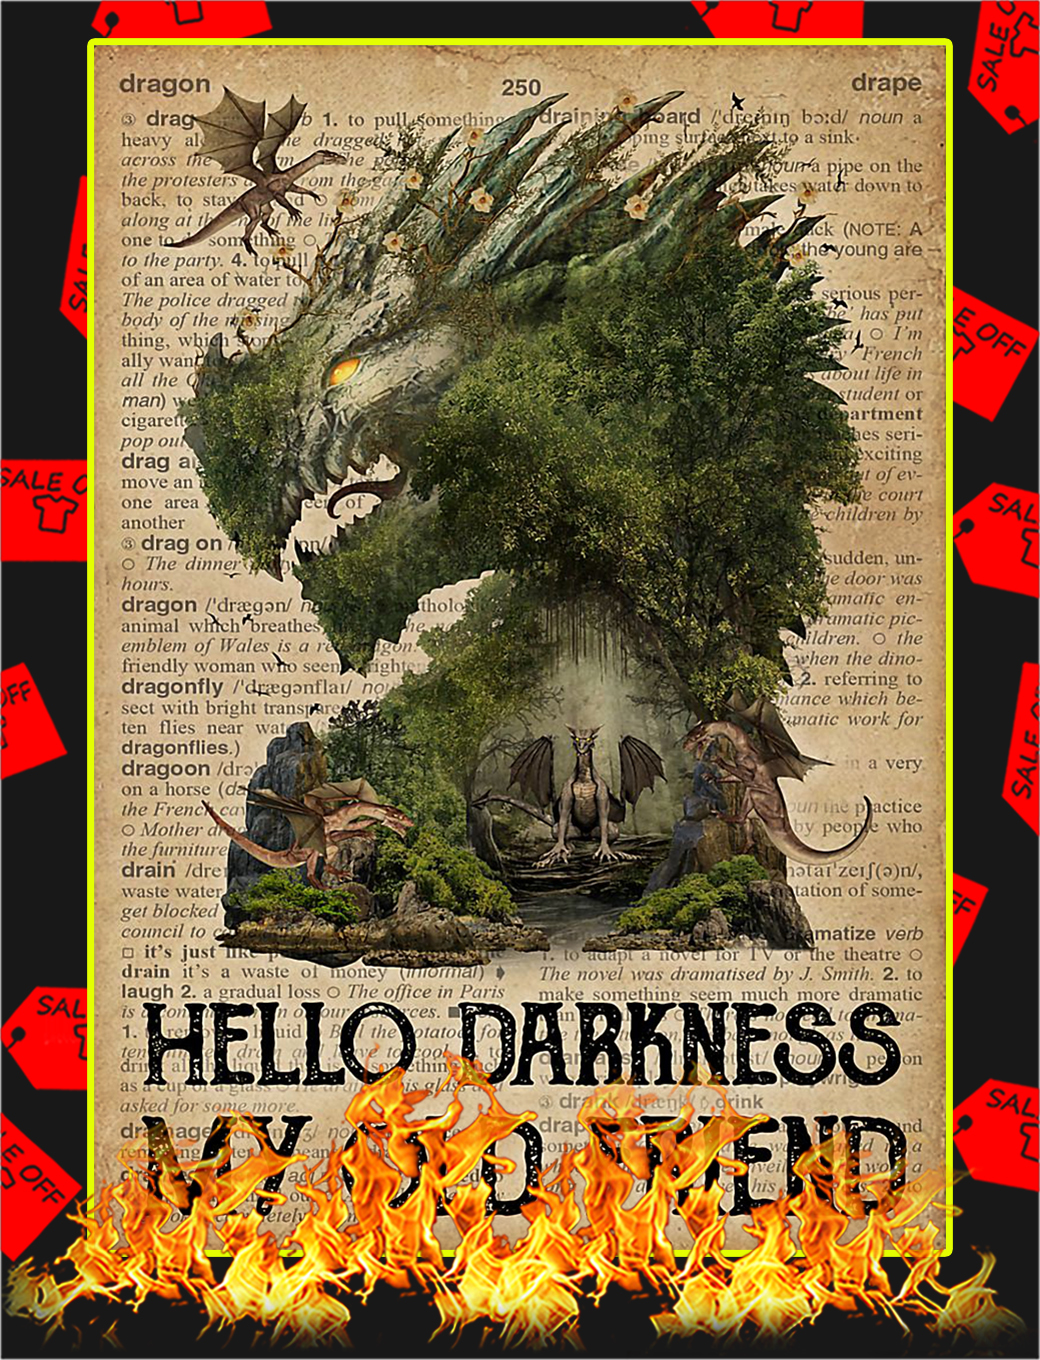 Dragon hello darkness my old friend poster - A4